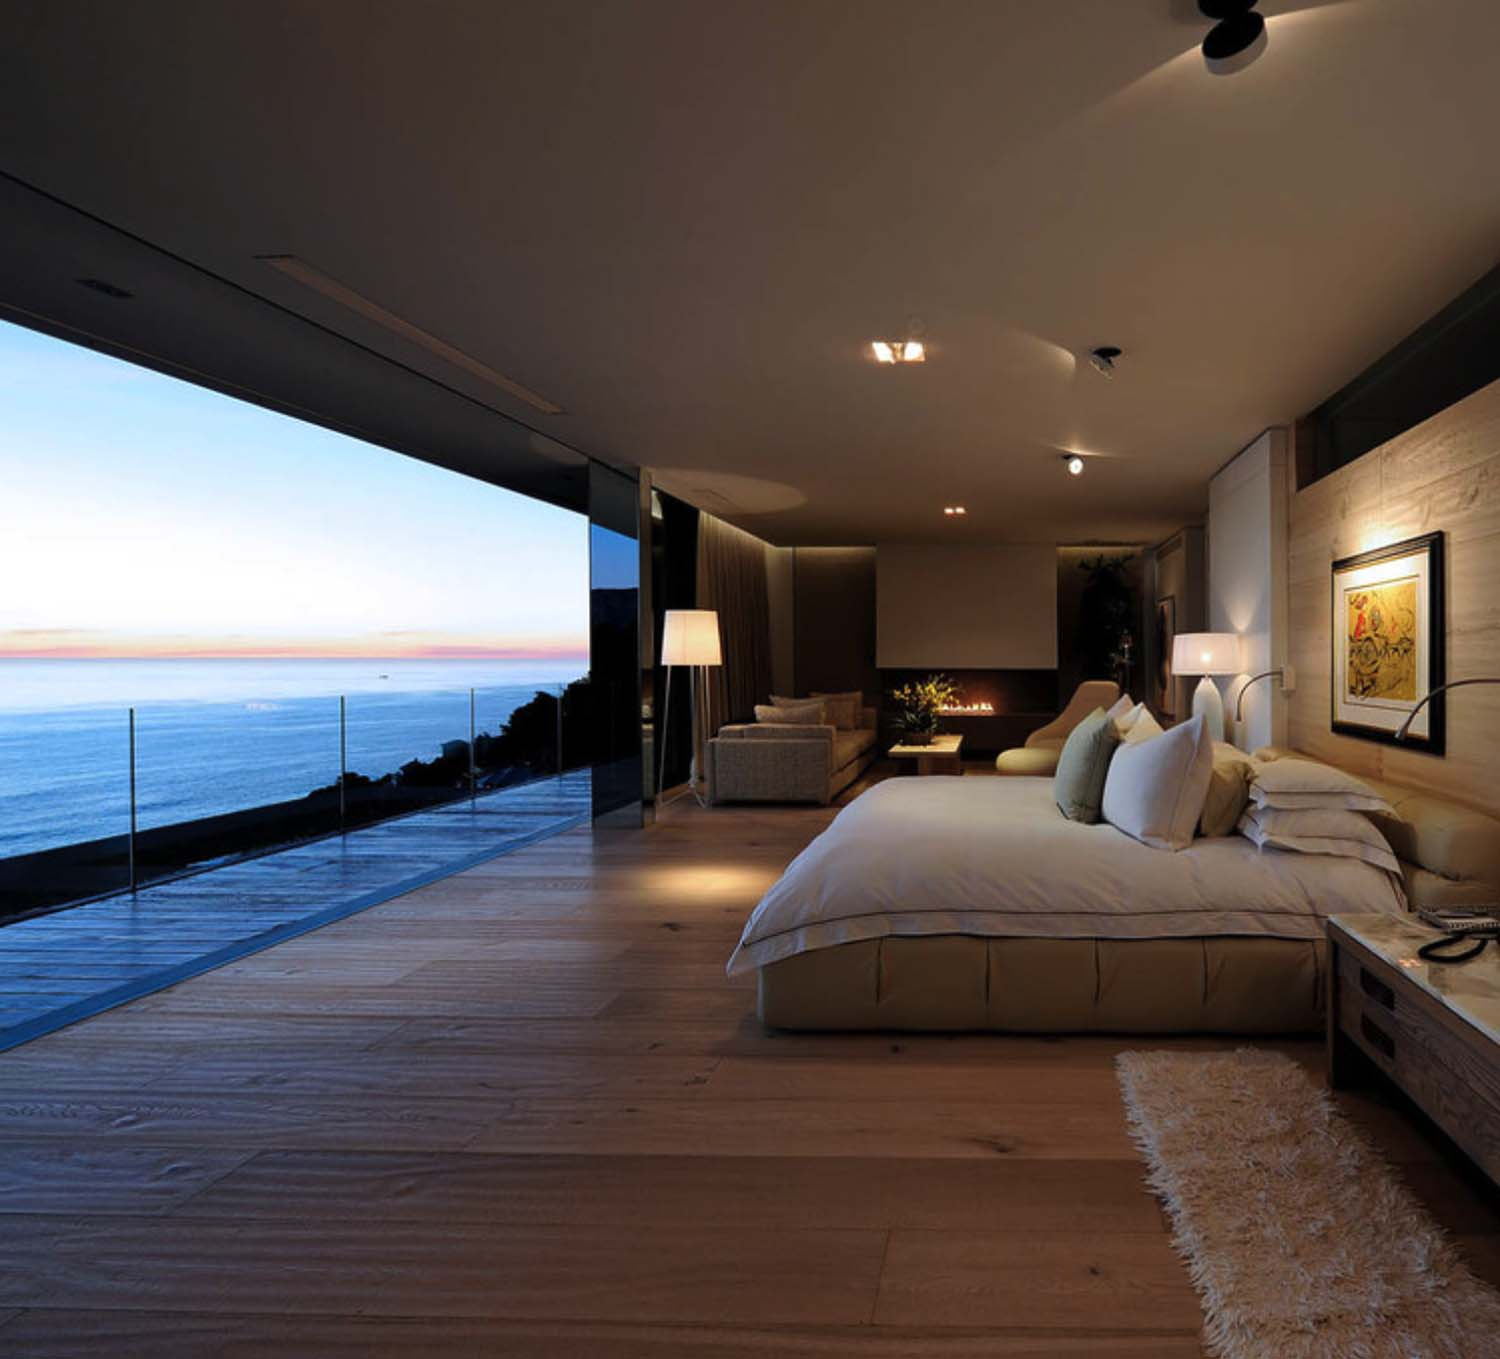 Bedroom With Ocean Views-15-1 Kindesign